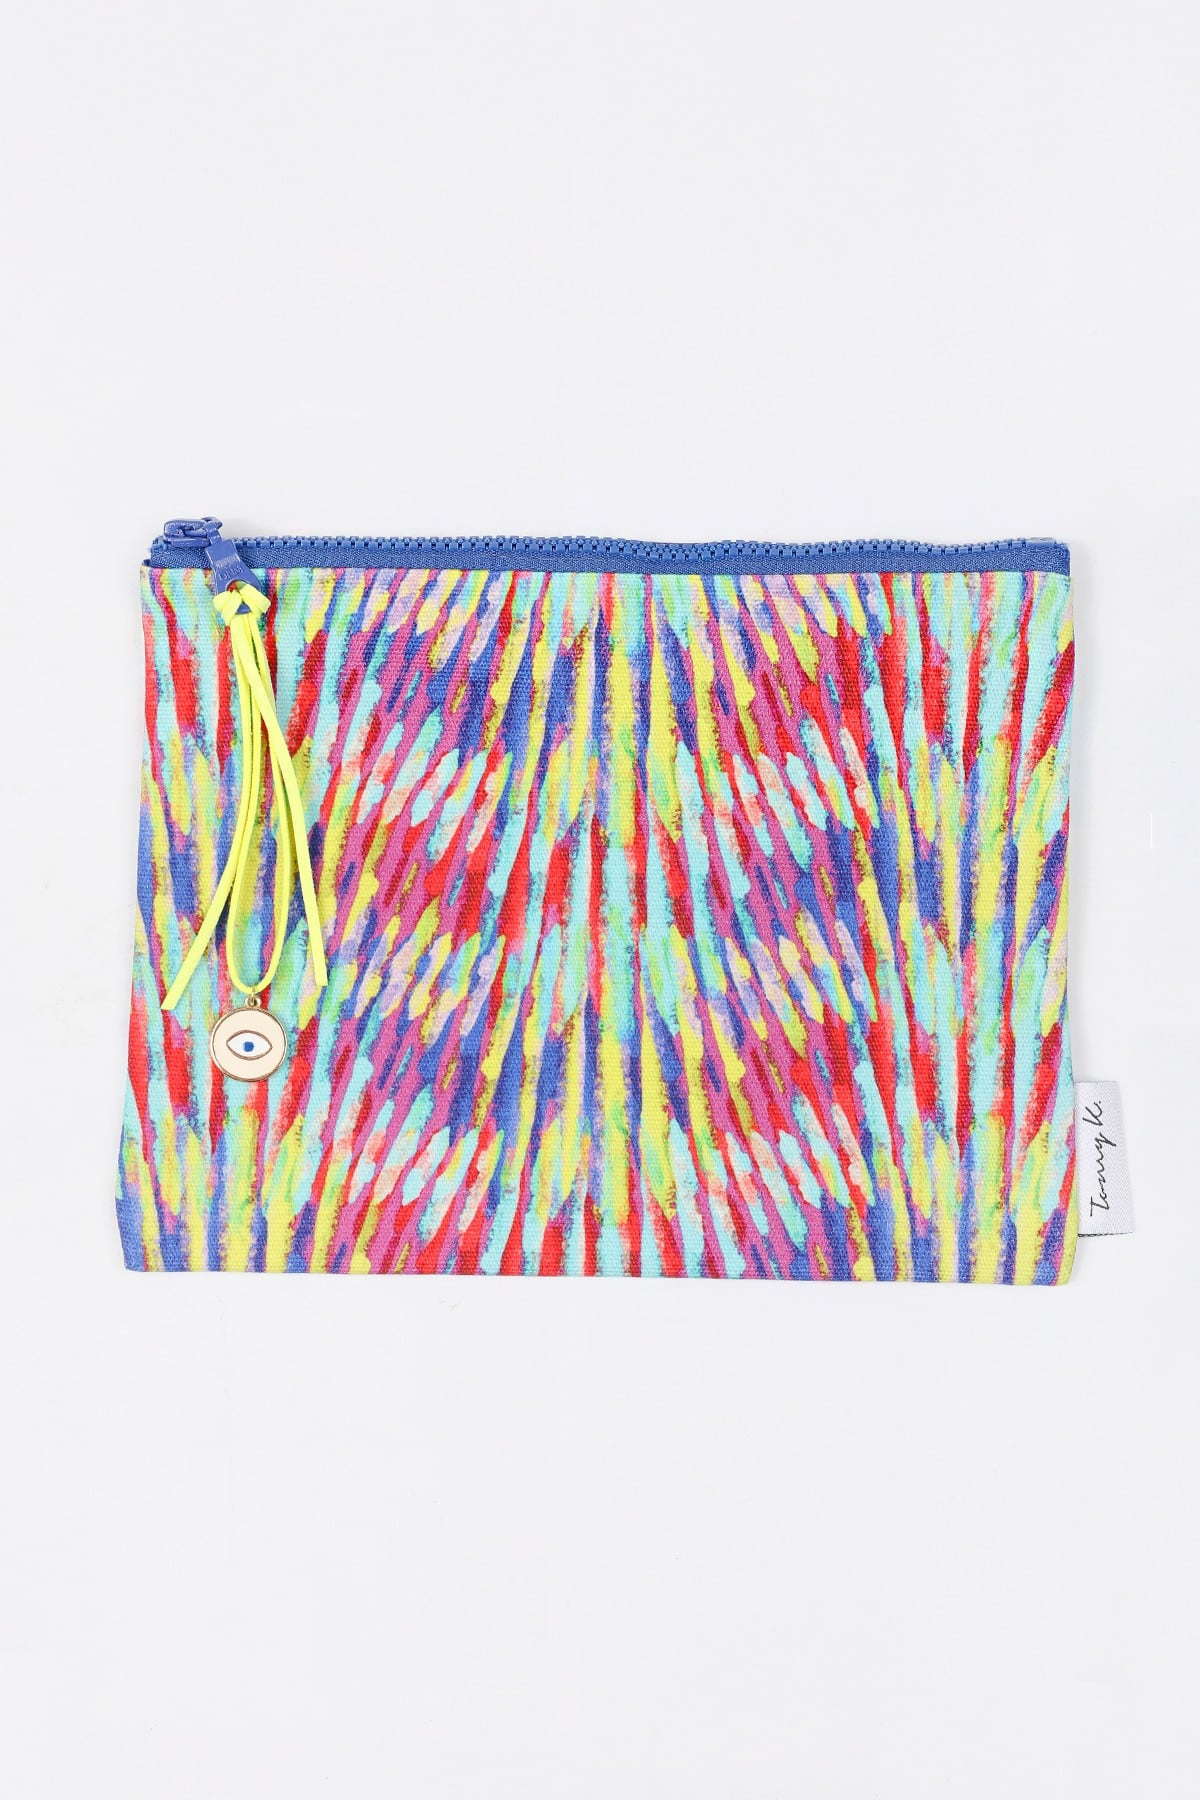 EXOTICA pouch  i-pad case by Tomy K